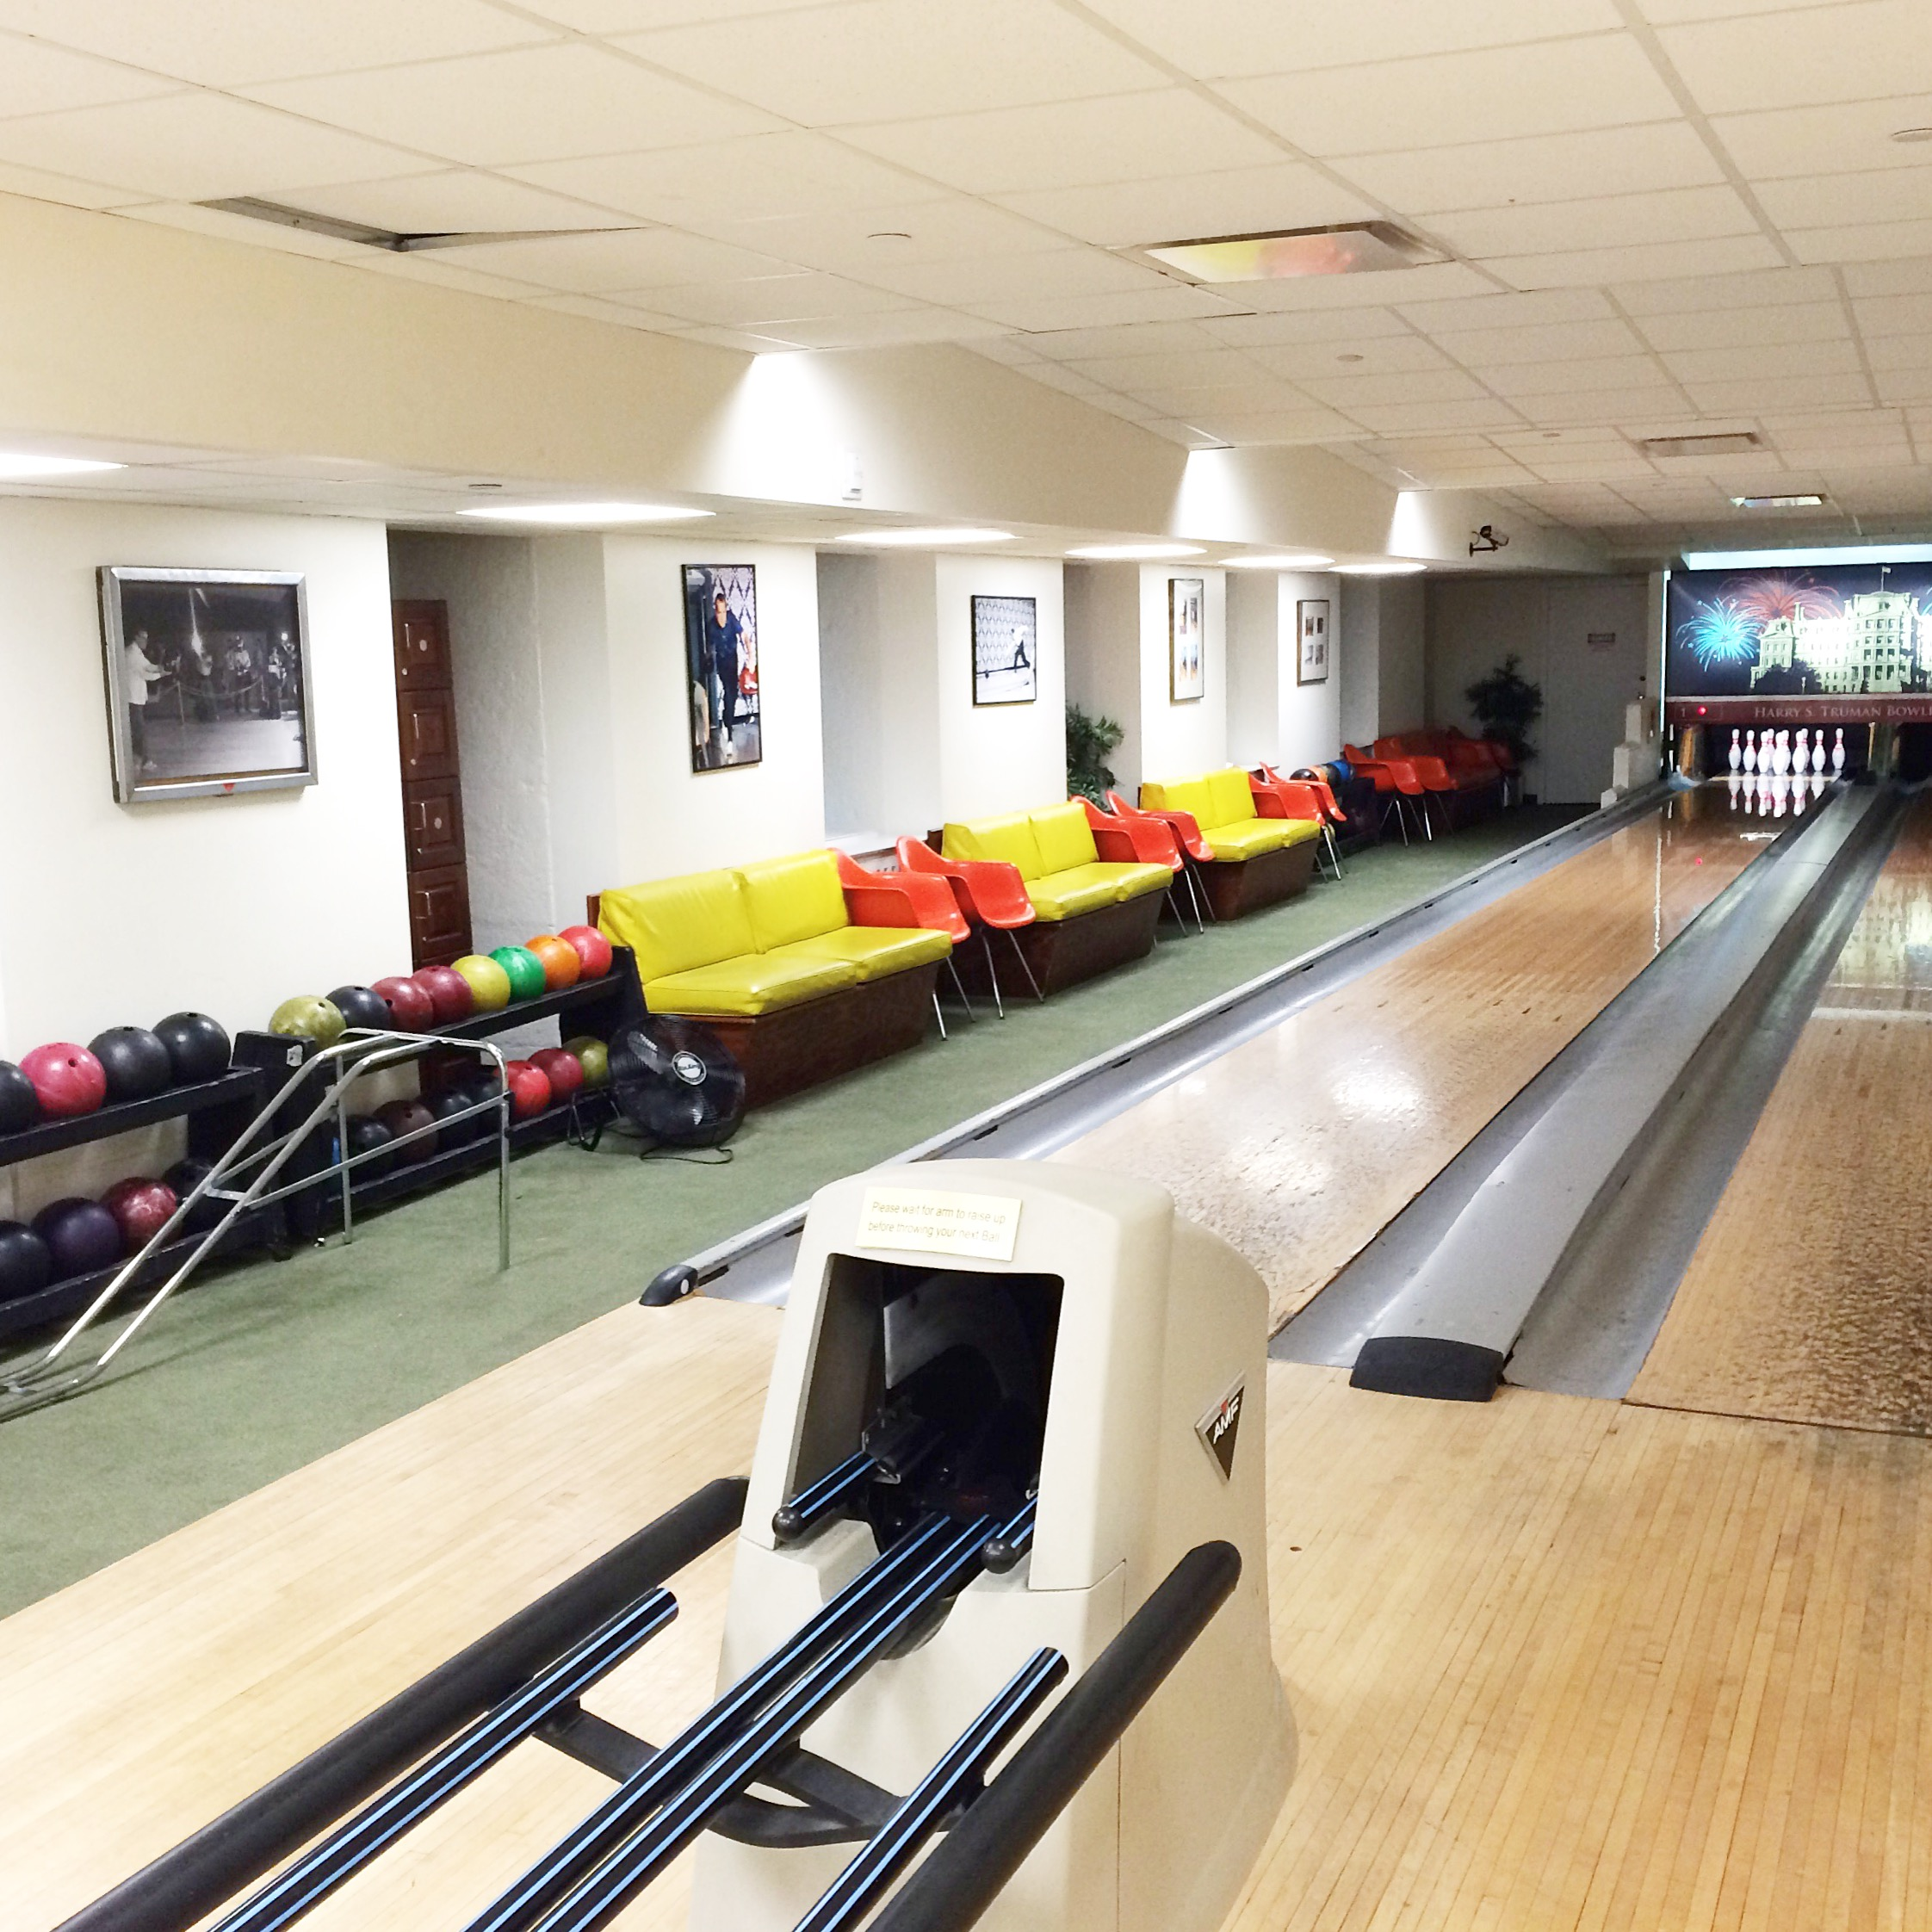 Harry S. Truman Bowling Alley